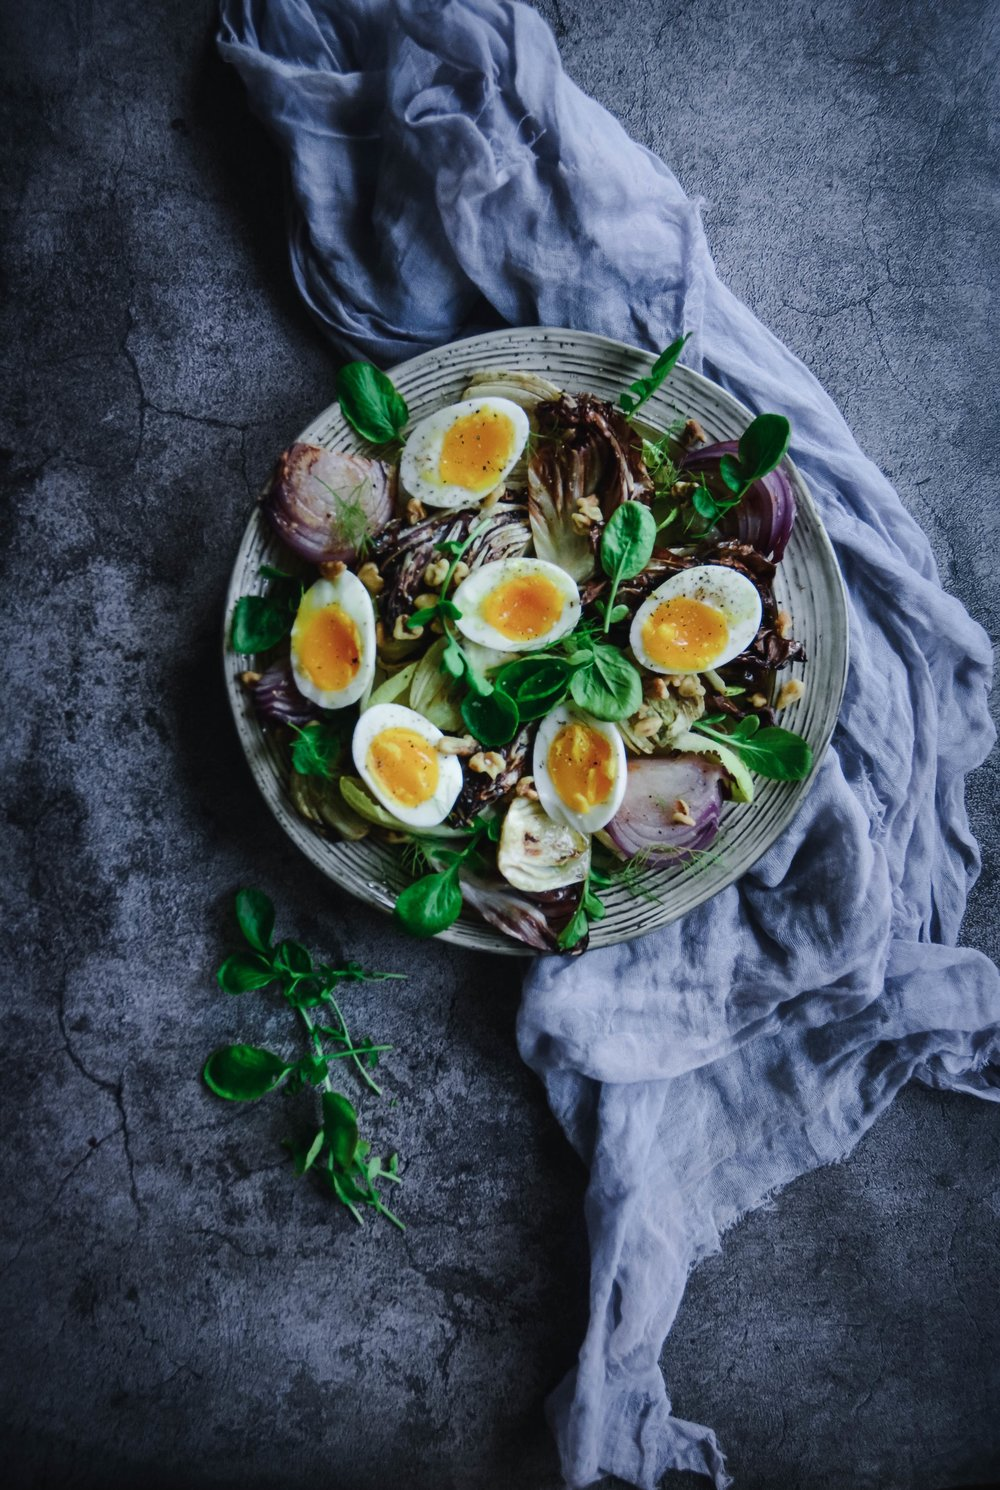 grilled radicchio, fennel and egg salad